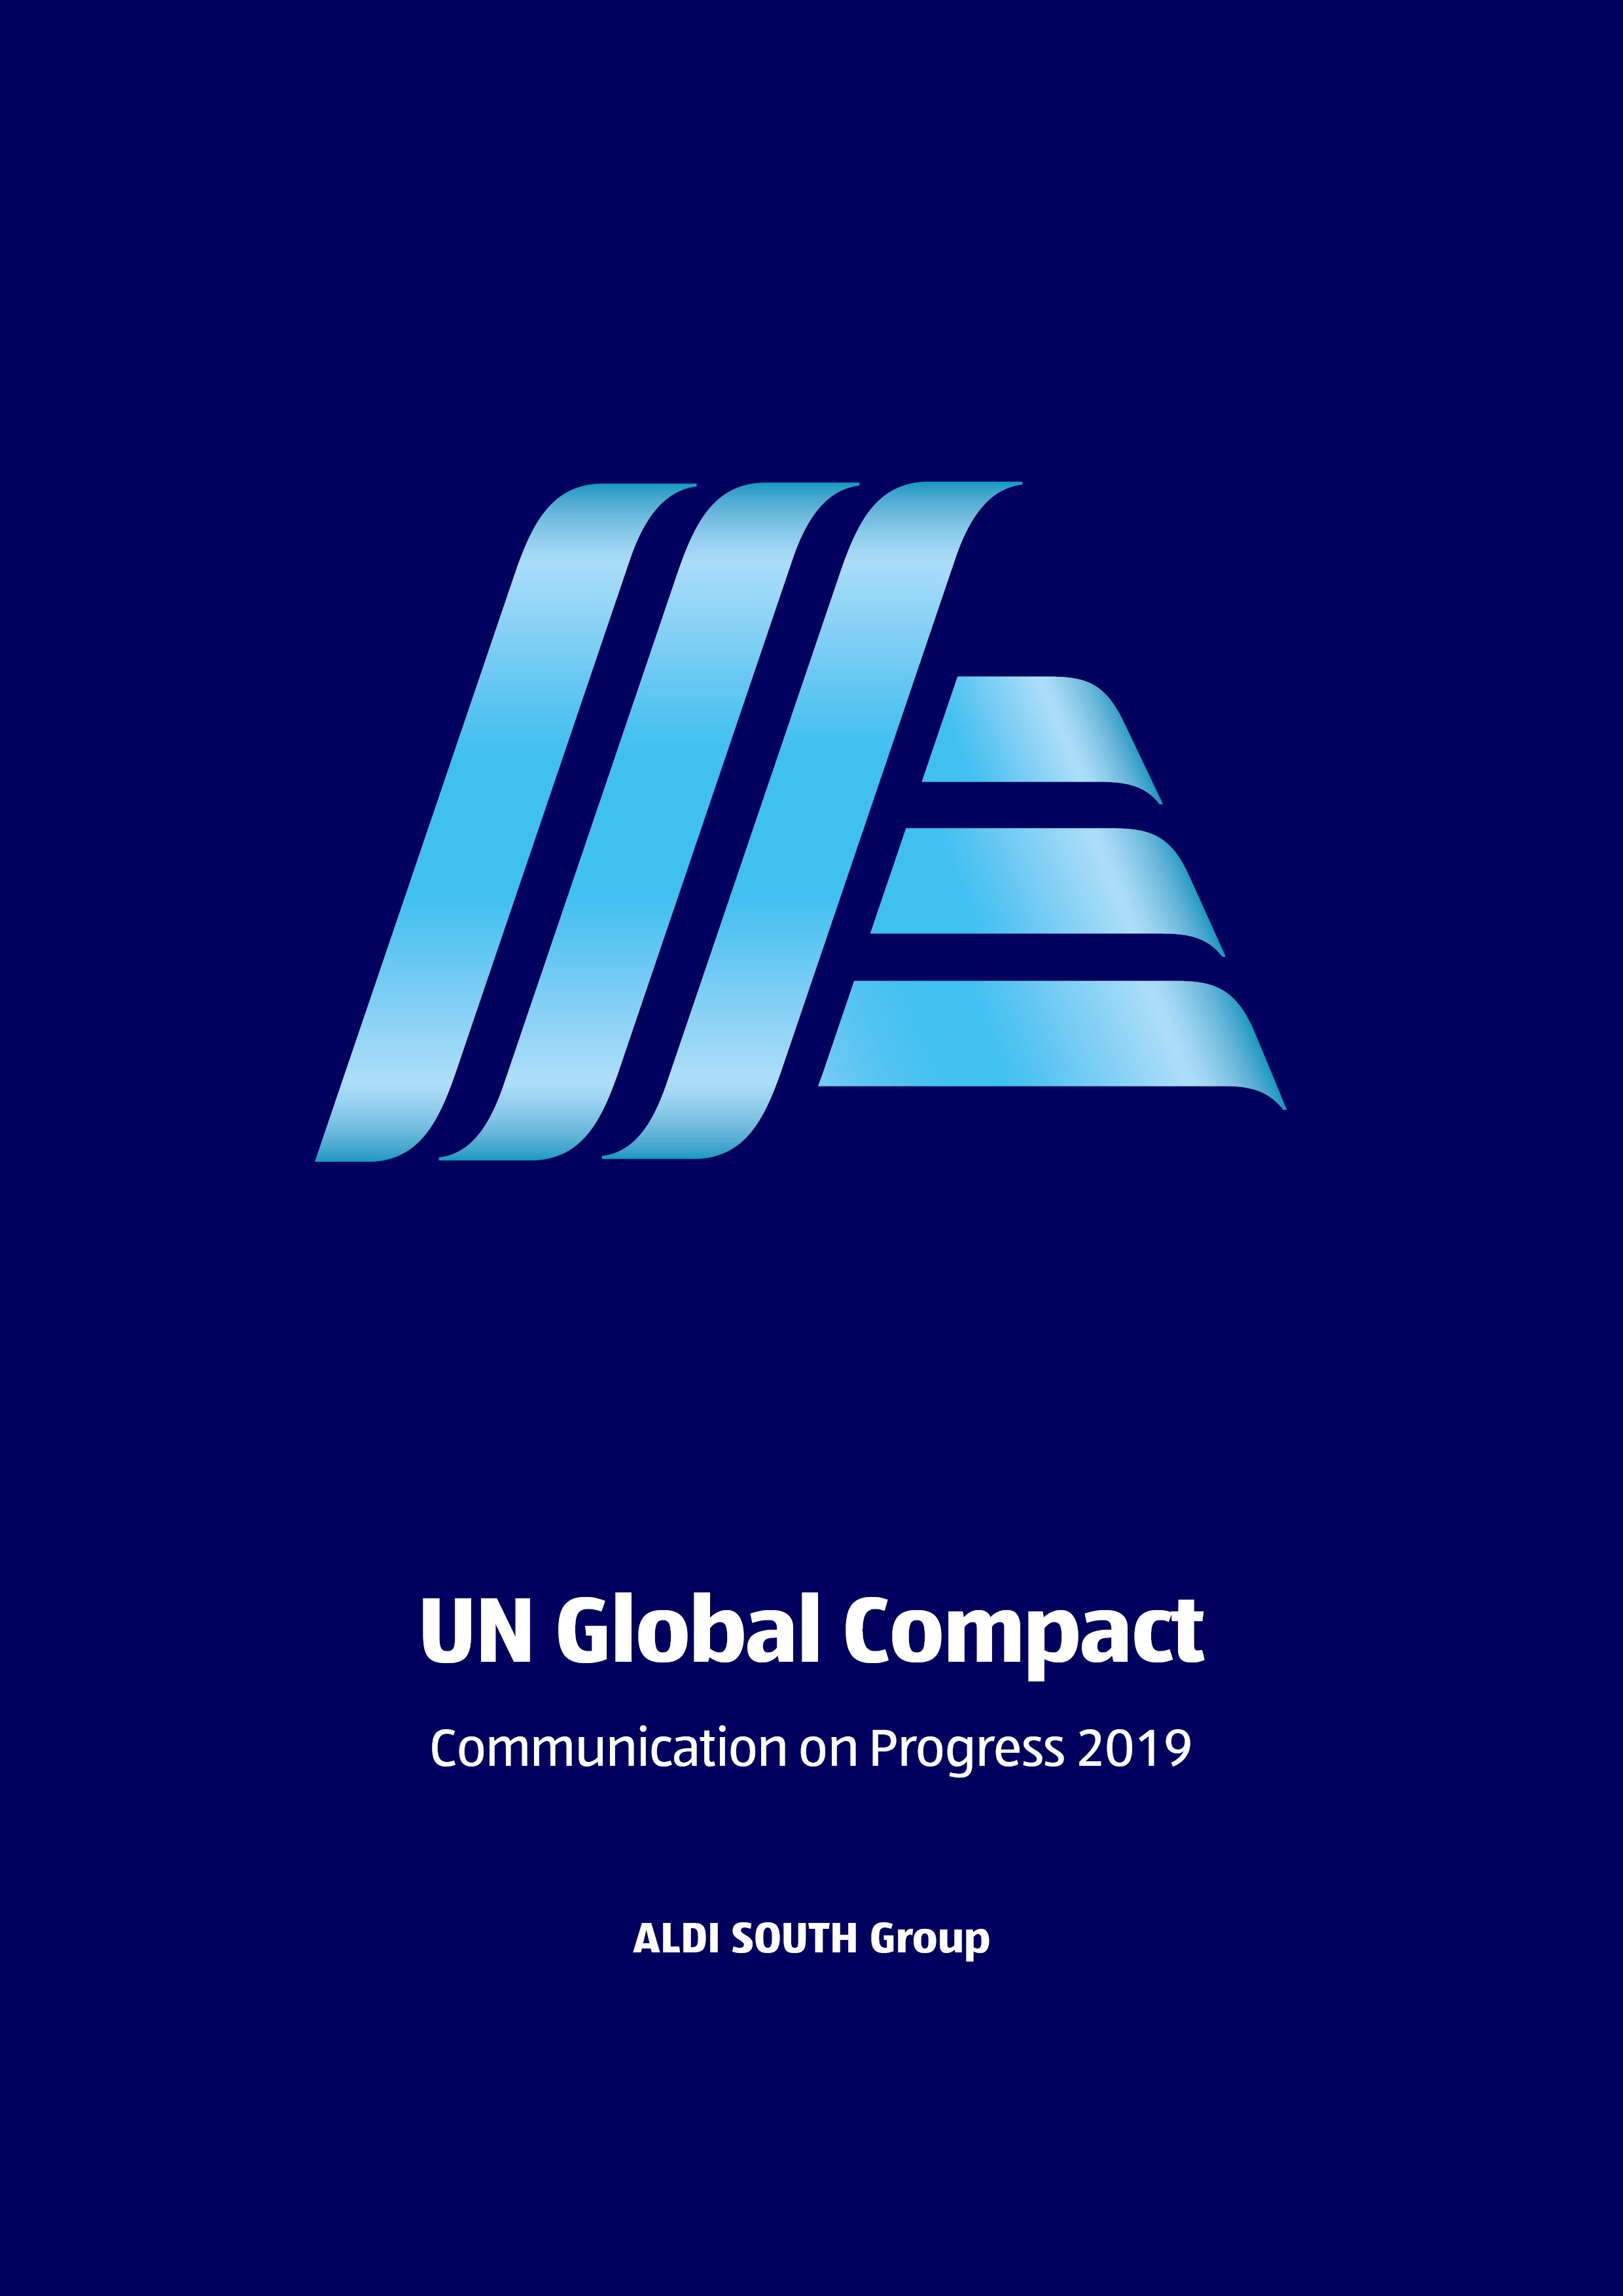 UNGC Progress Report 2019